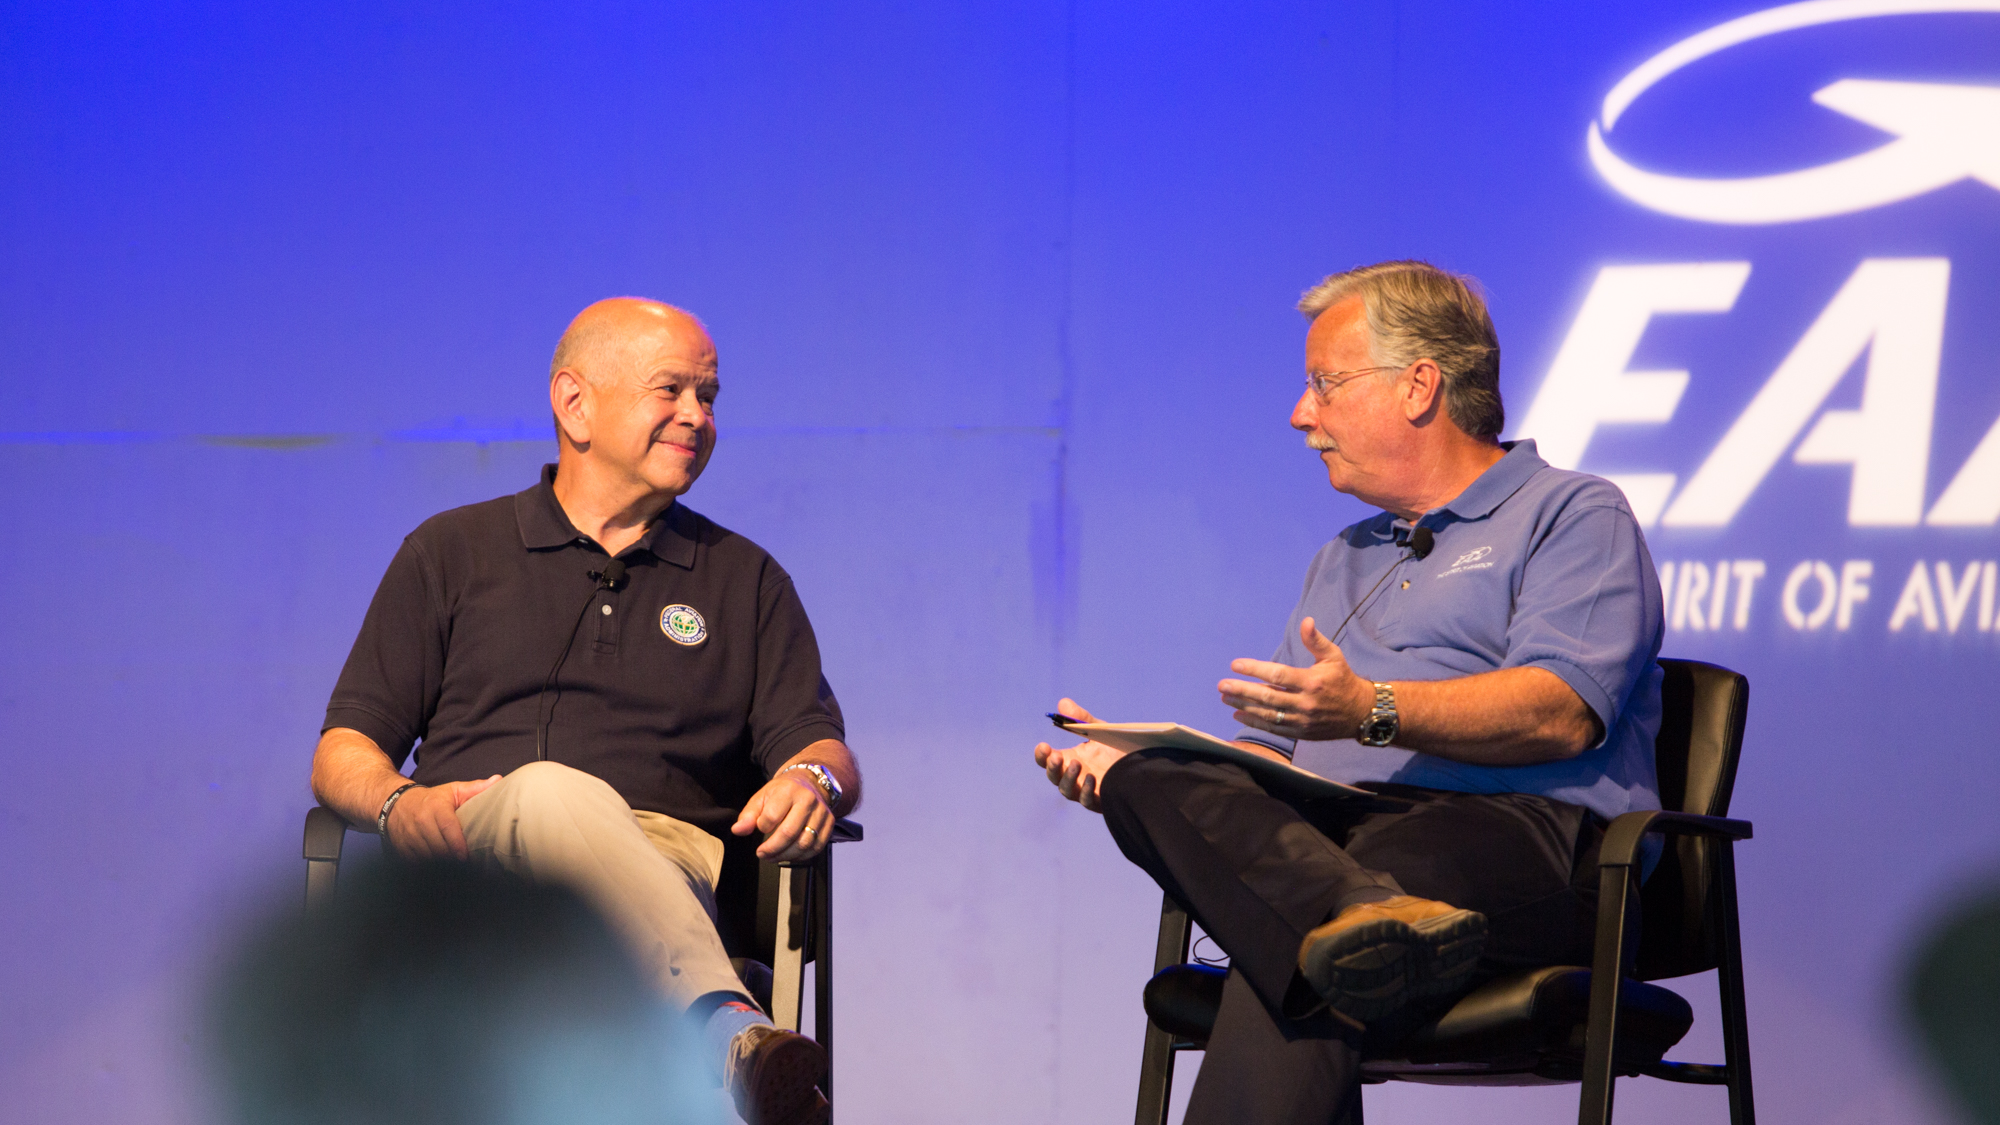 FAA Administrator Michael Huerta chats with EAA CEO Jack Pelton at EAA AirVenture July 27. Jim Moore photo.